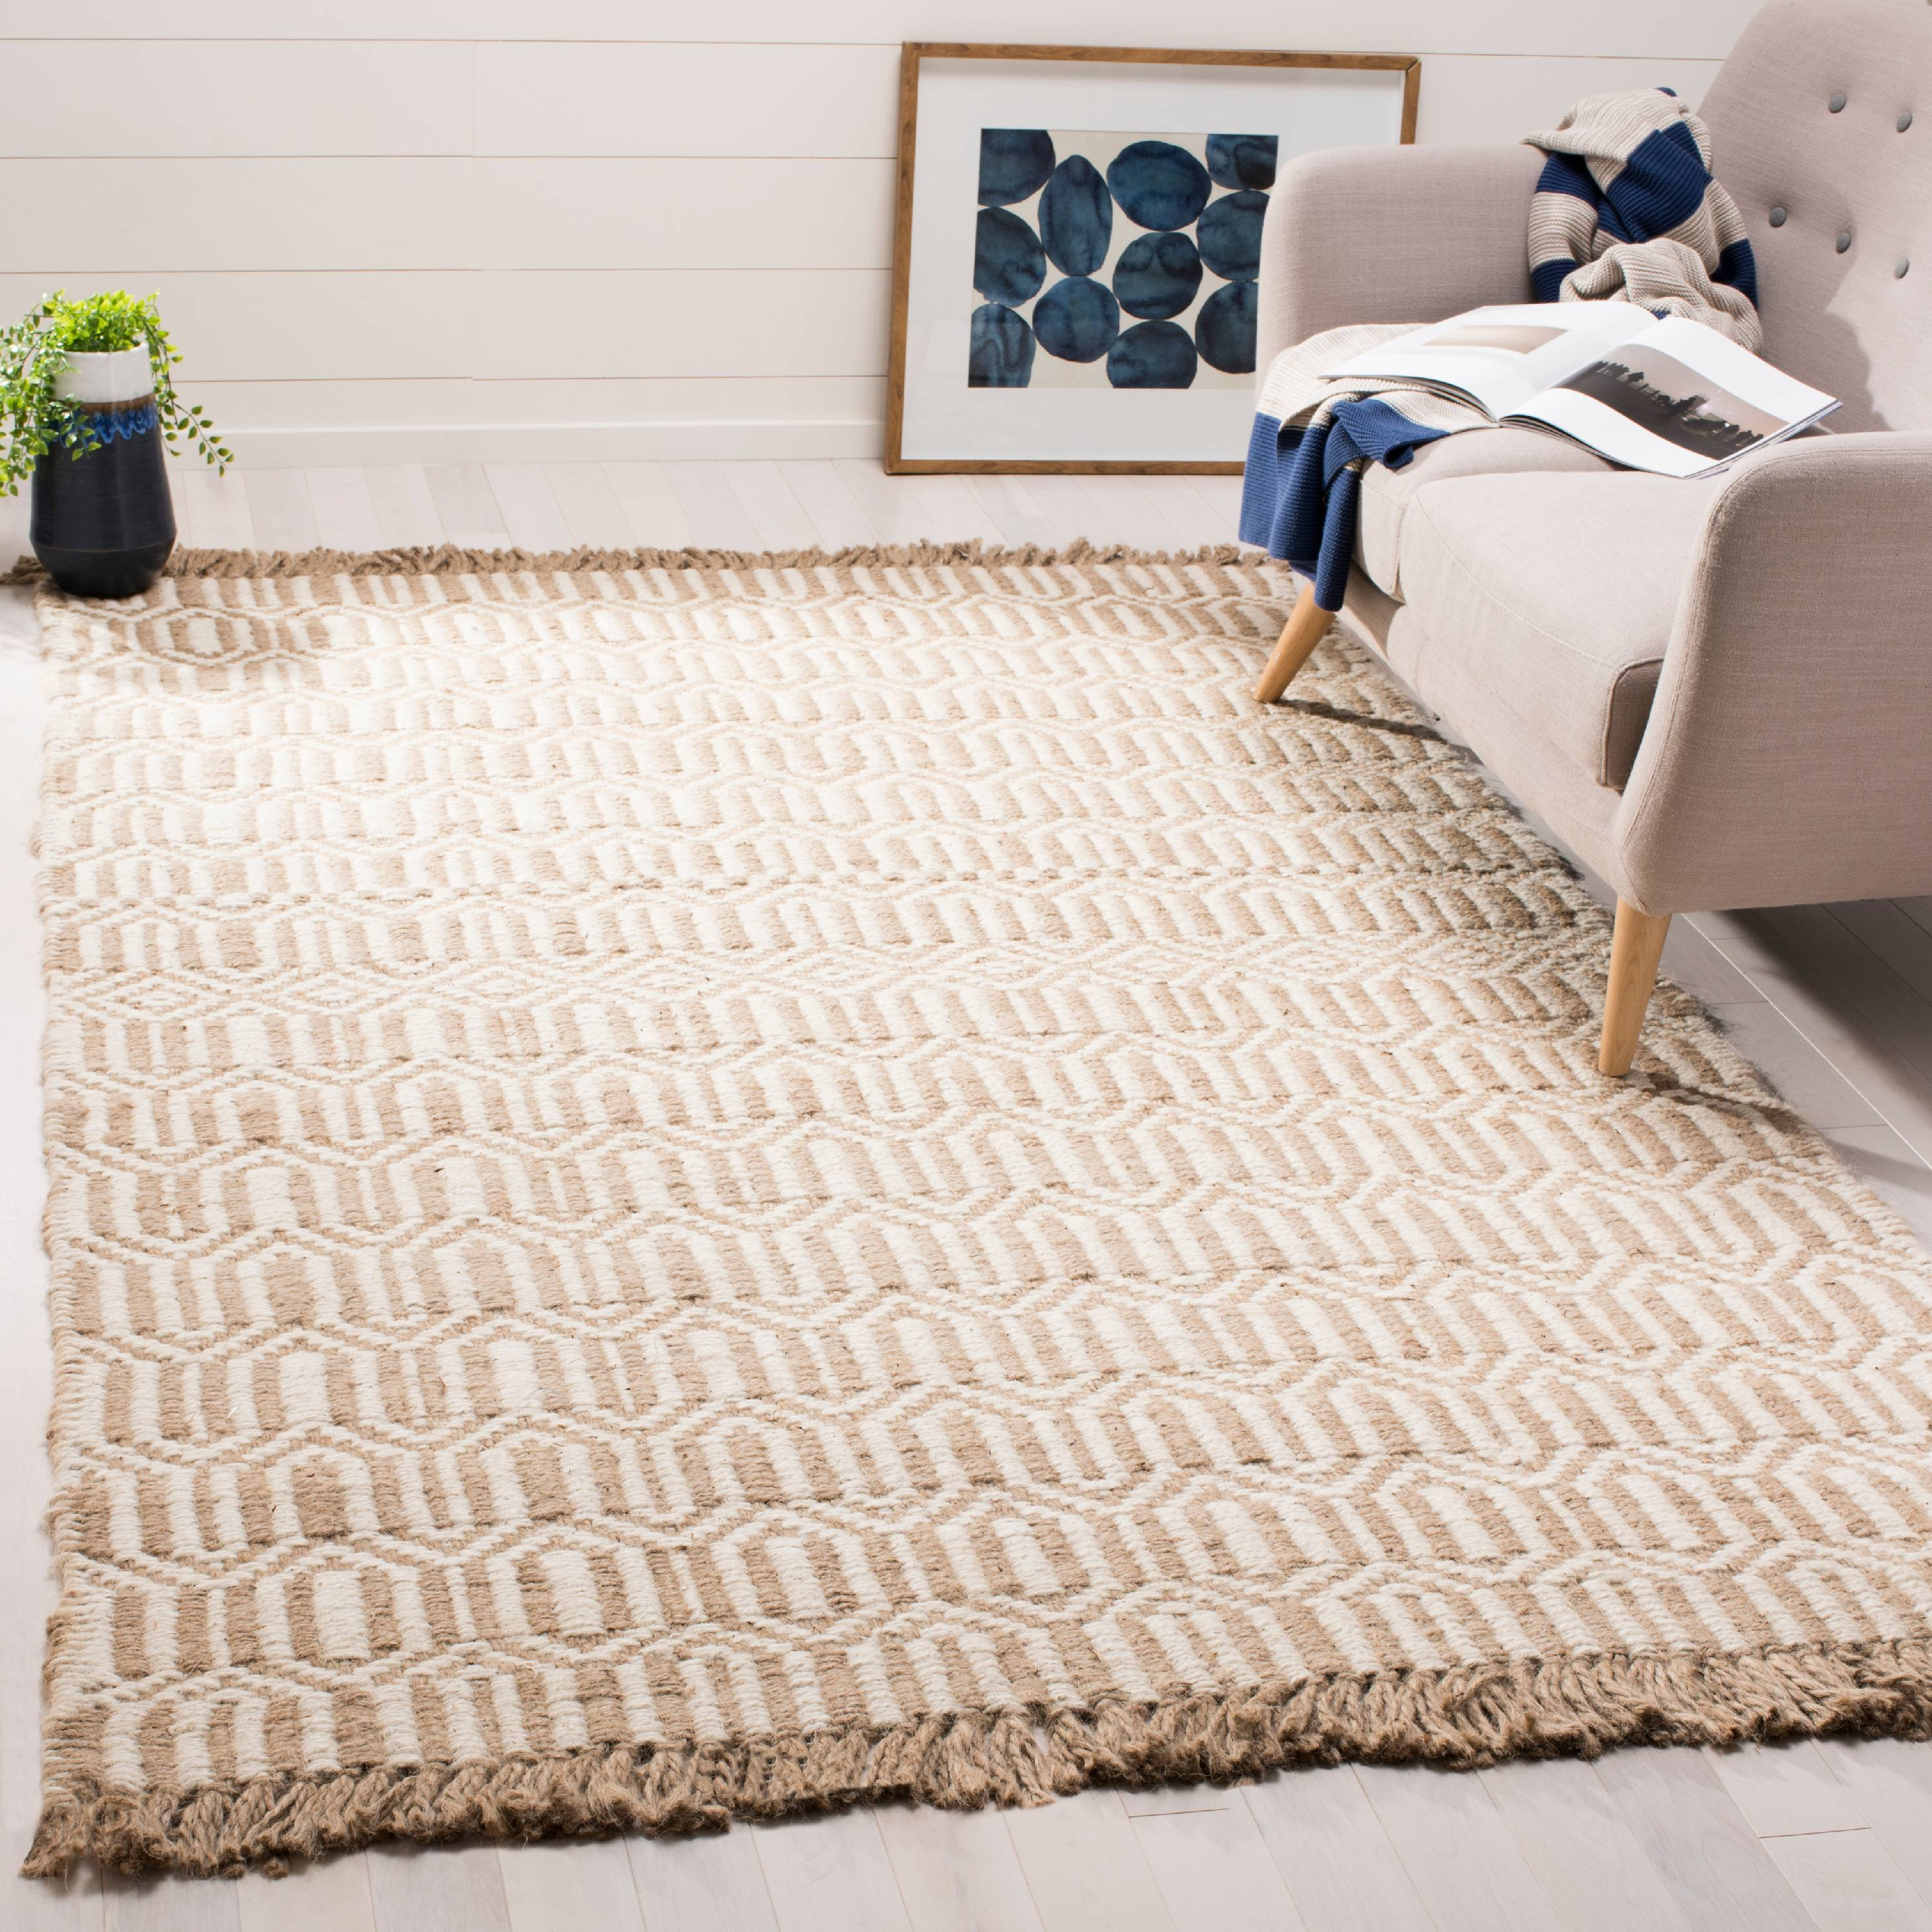 Safavieh Natural Fiber Jakov Geometric Area Rug or Runner